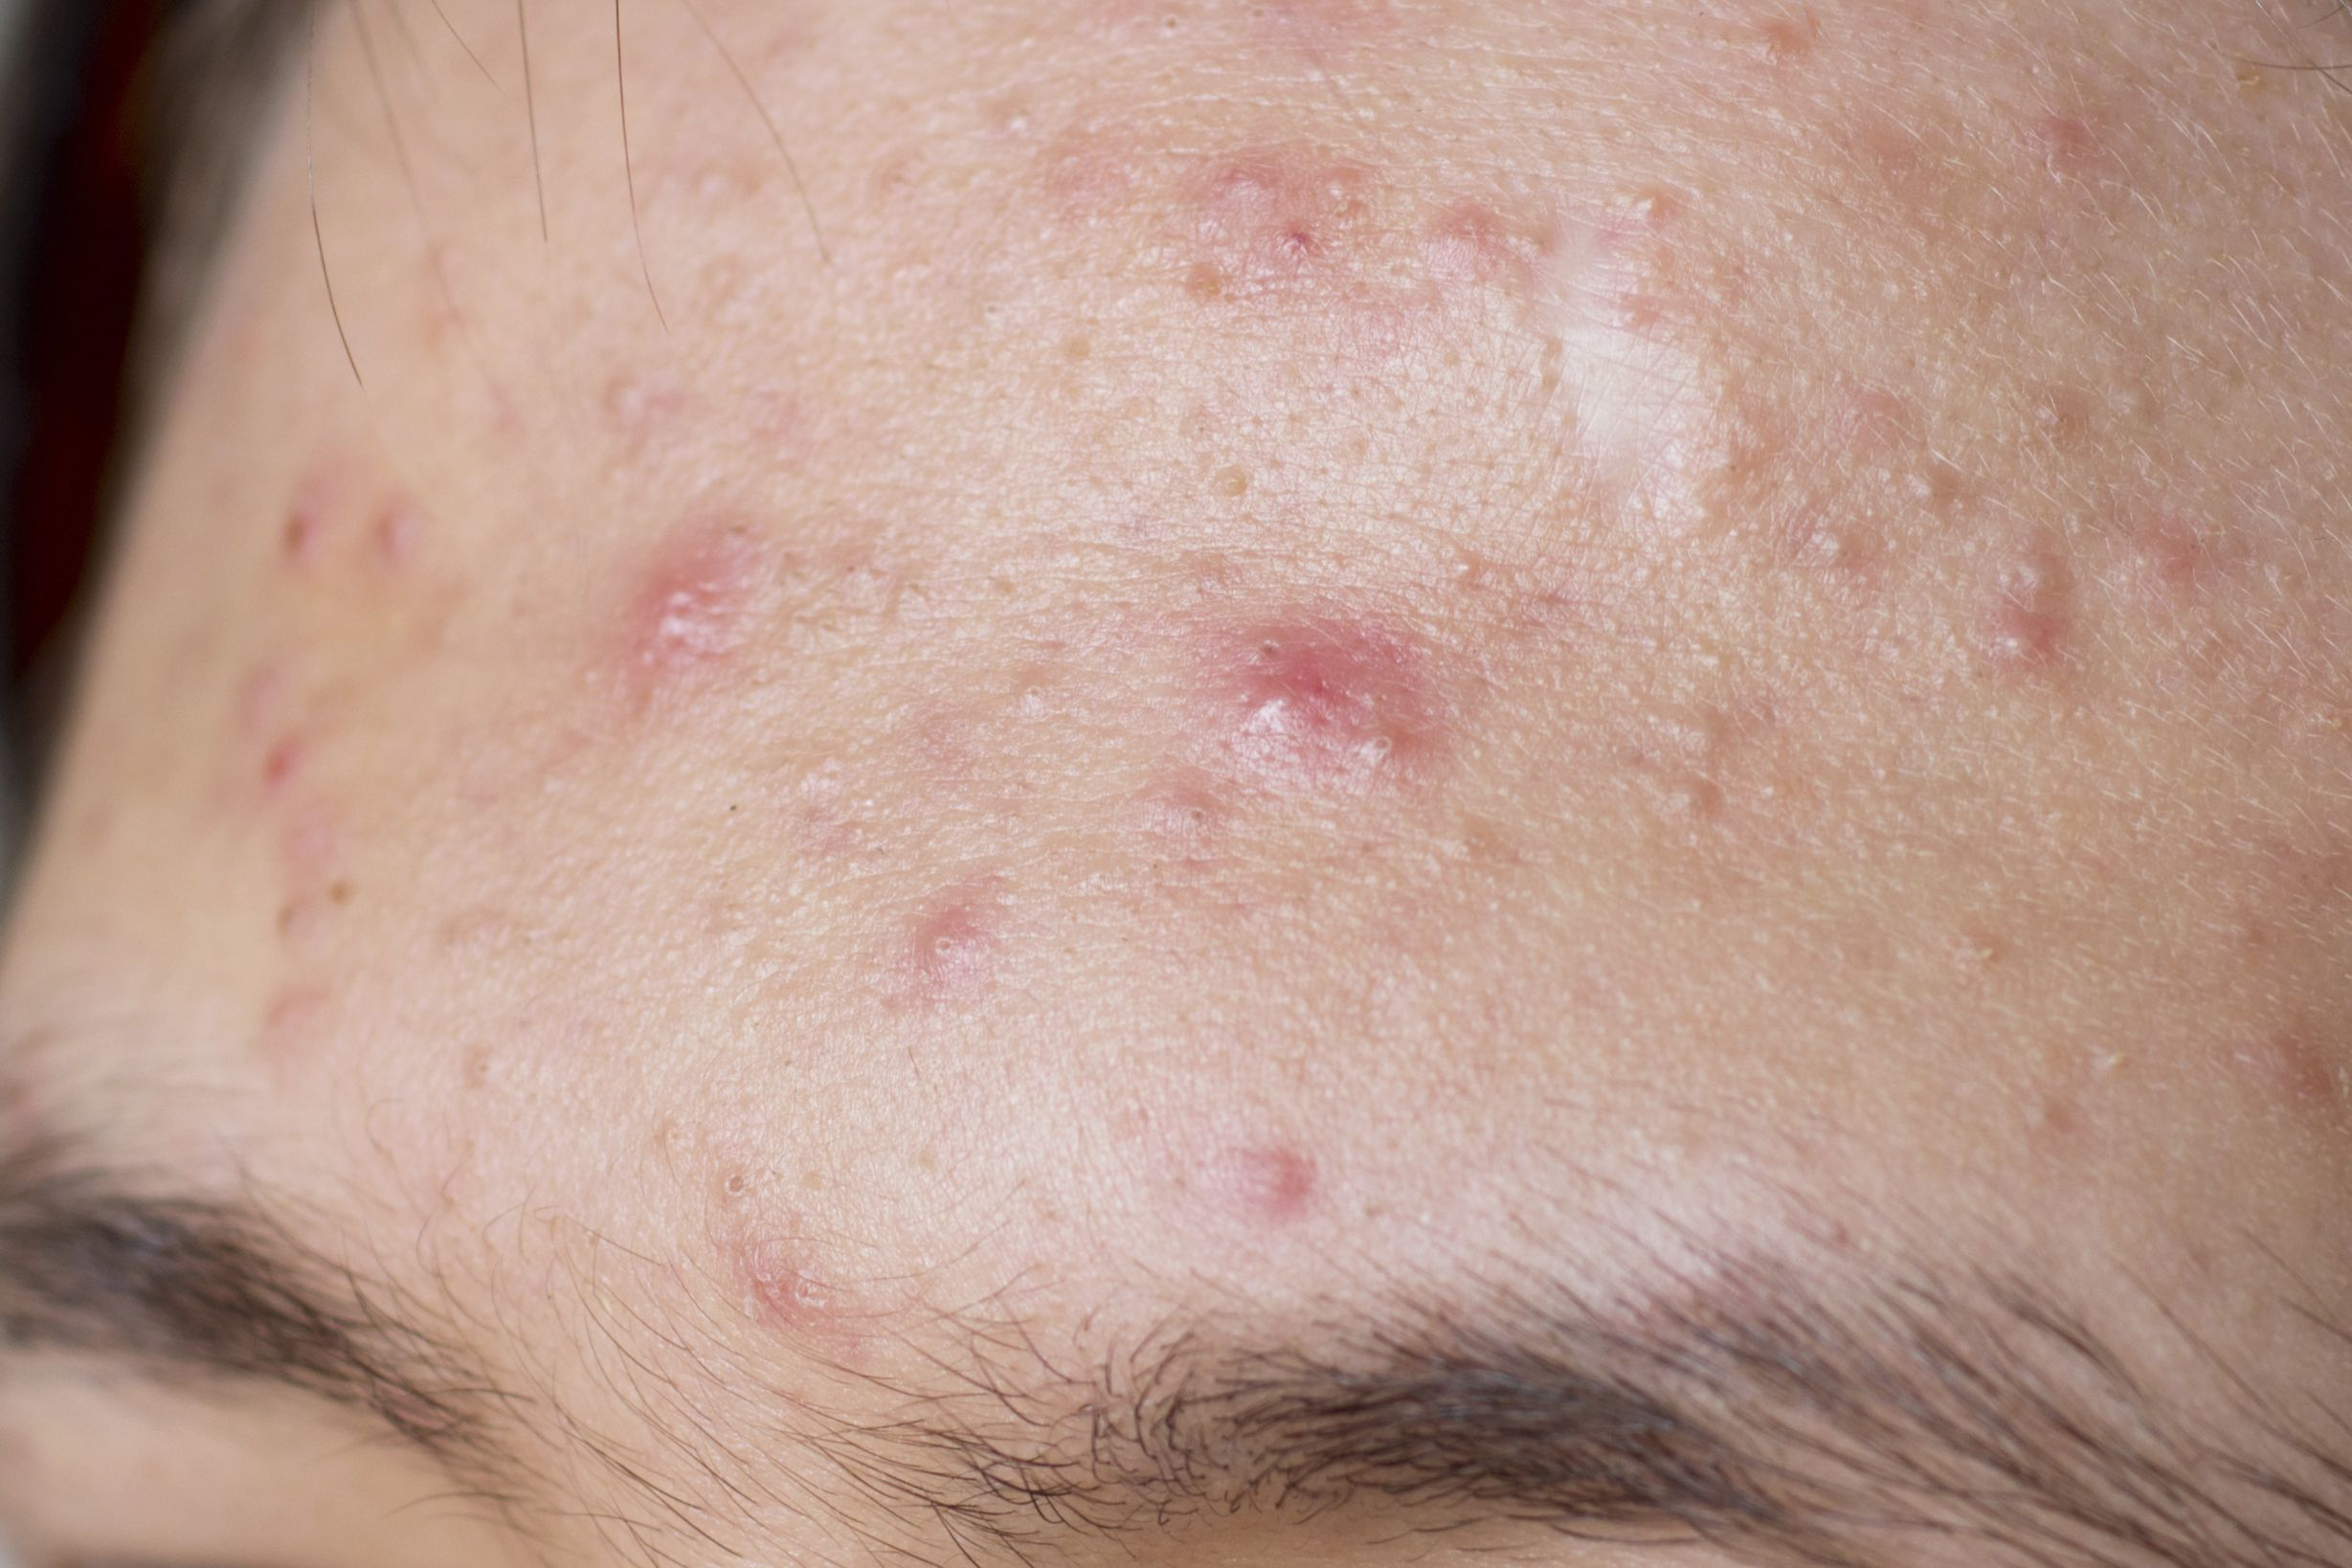 8 Common Skin Problems And How To Fix Them Acne And Rosacea Advice